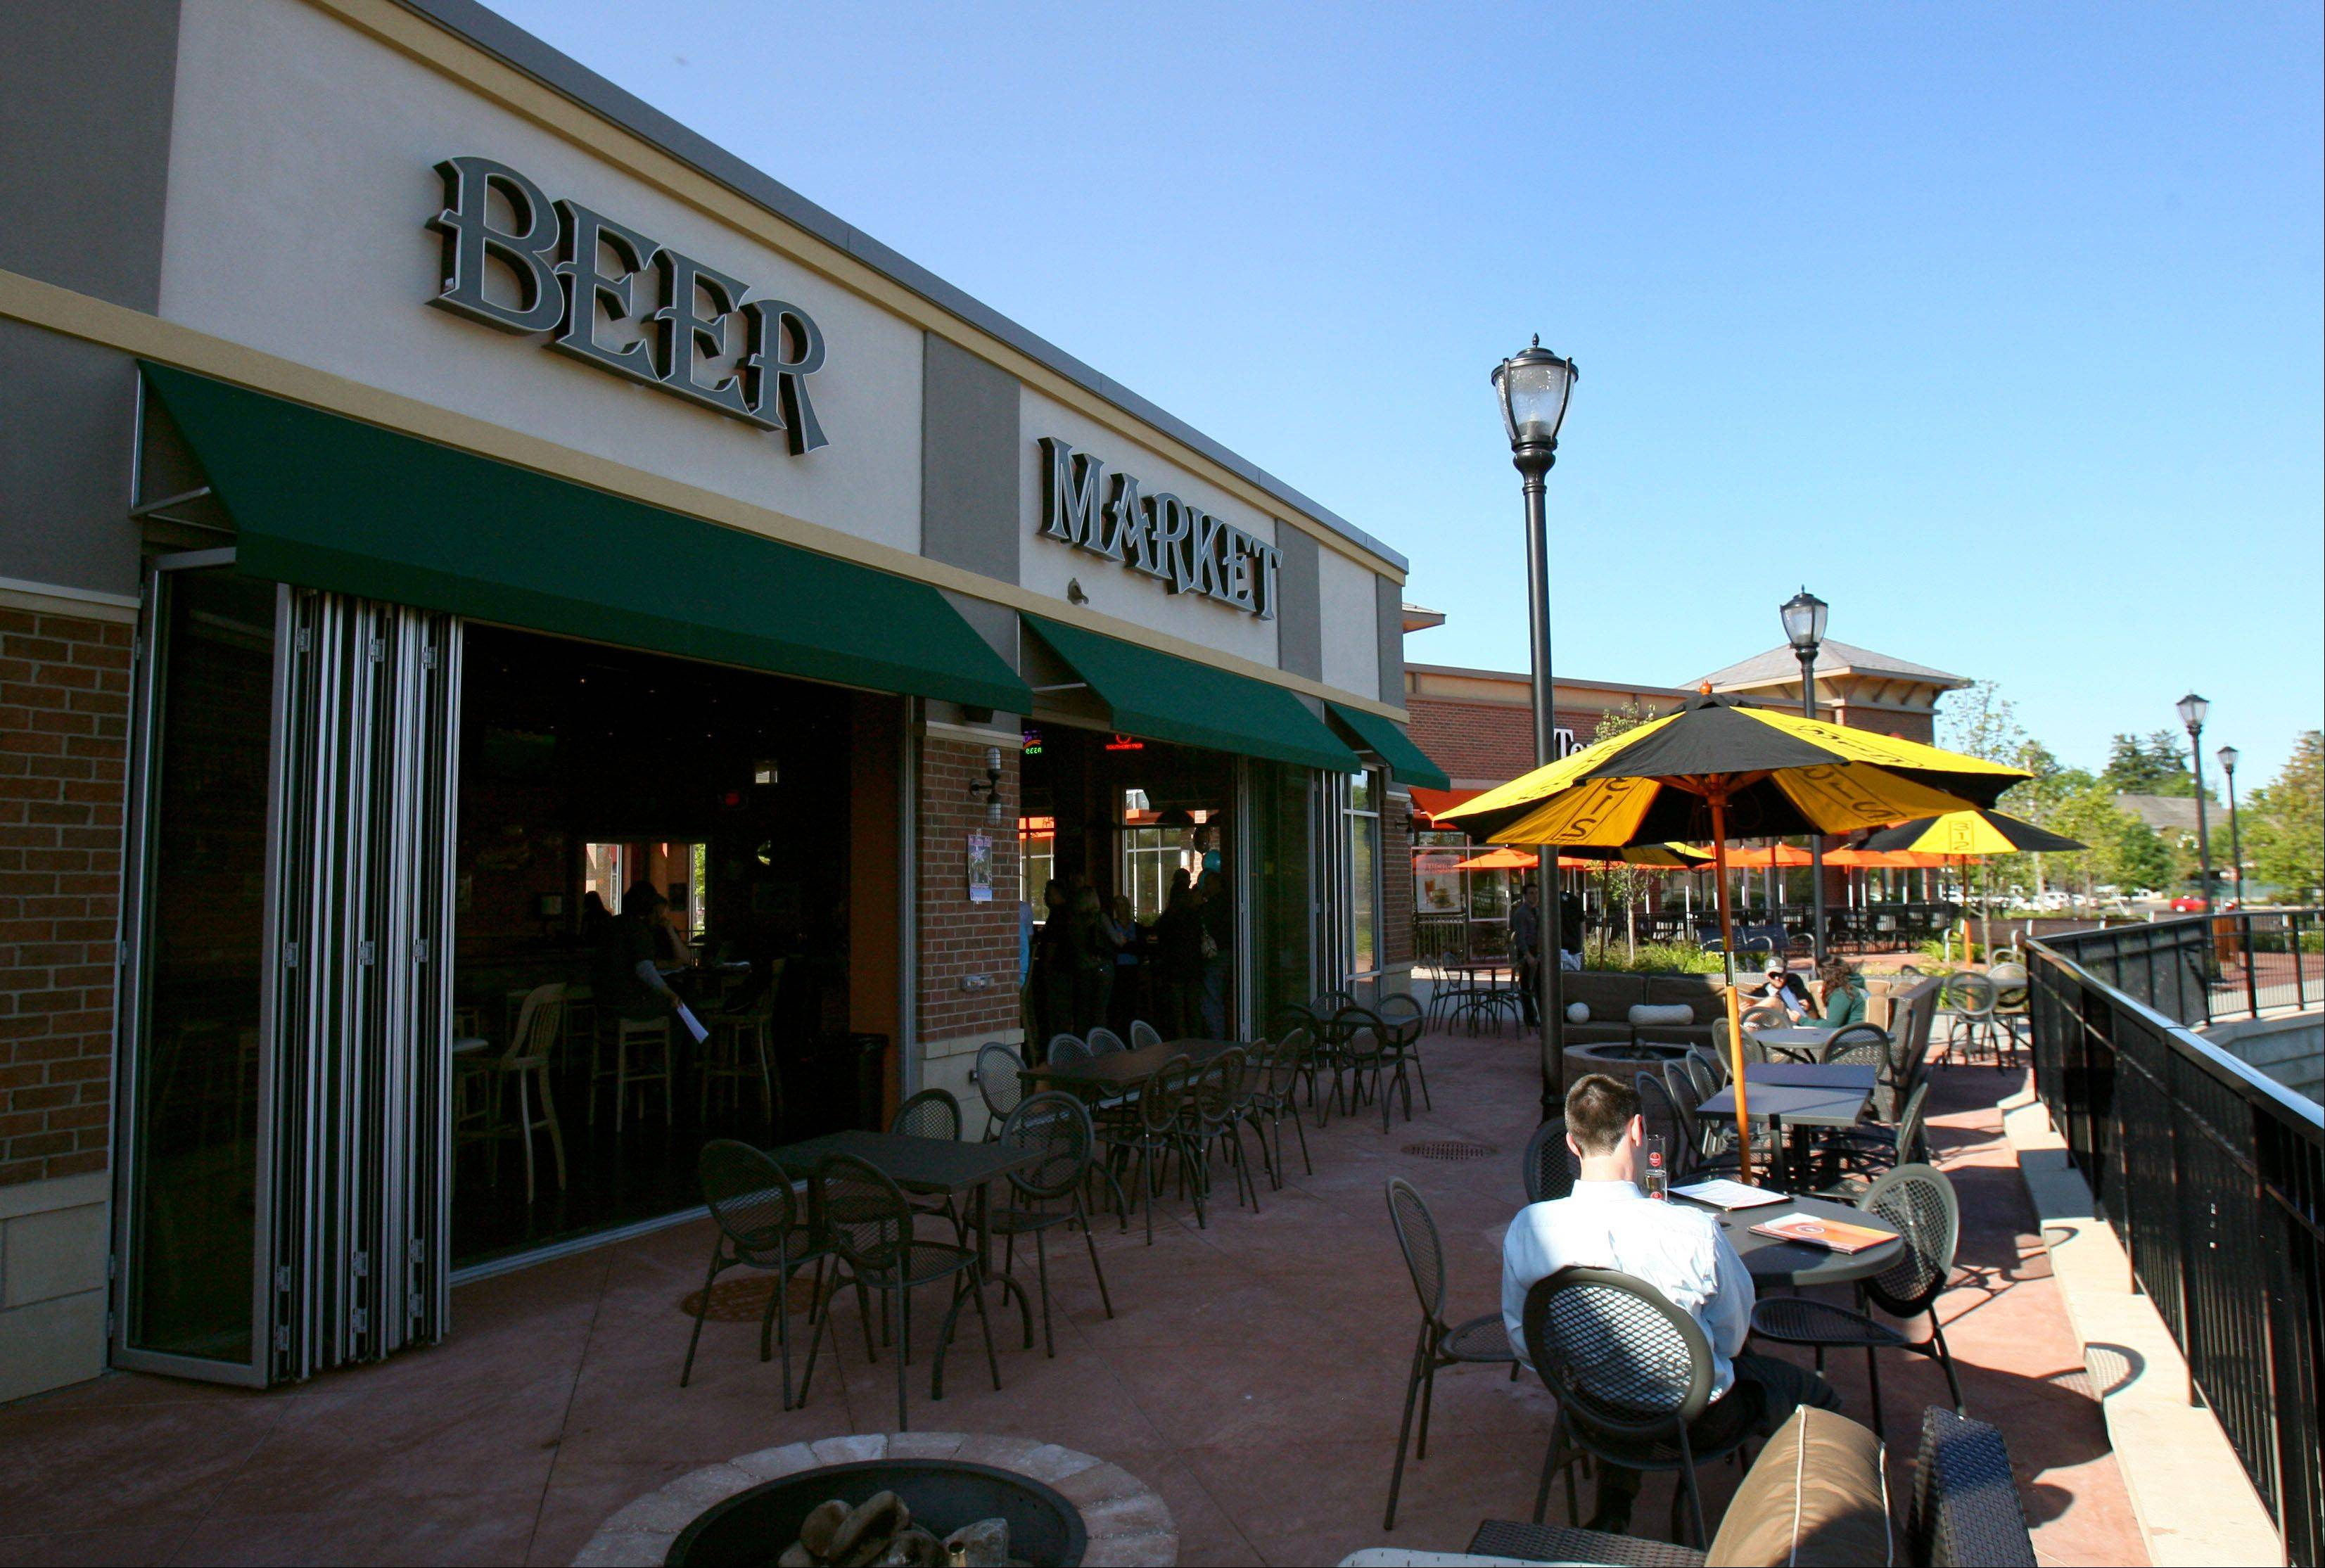 The patio area proves a nice place to enjoy your favorite brews at the Beer Market in Vernon Hills.